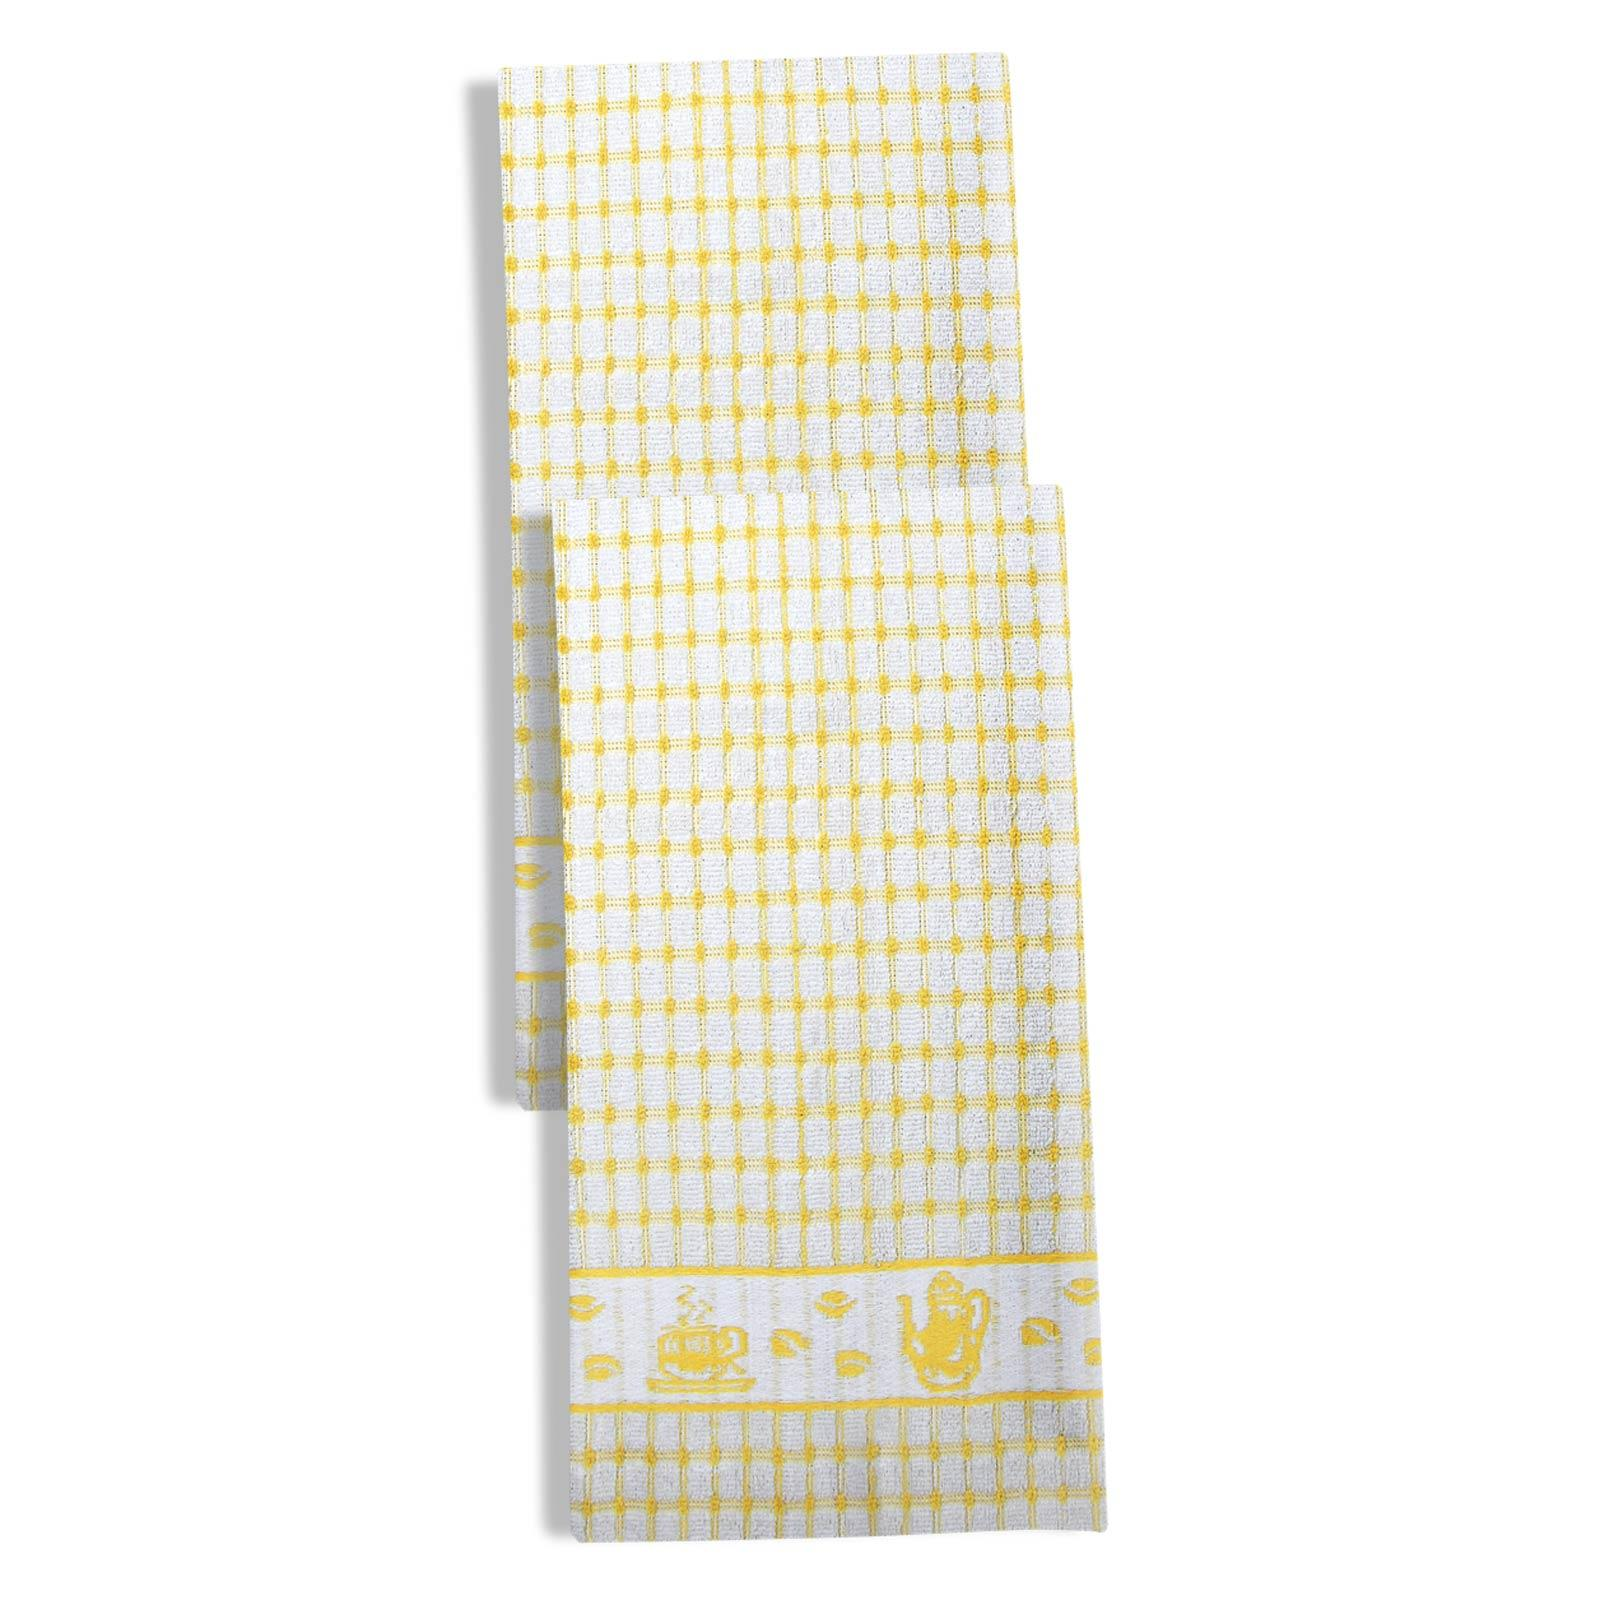 Packs-of-2-4-6-12-Tea-Towels-100-Cotton-Terry-Kitchen-Dish-Drying-Towel-Sets thumbnail 18